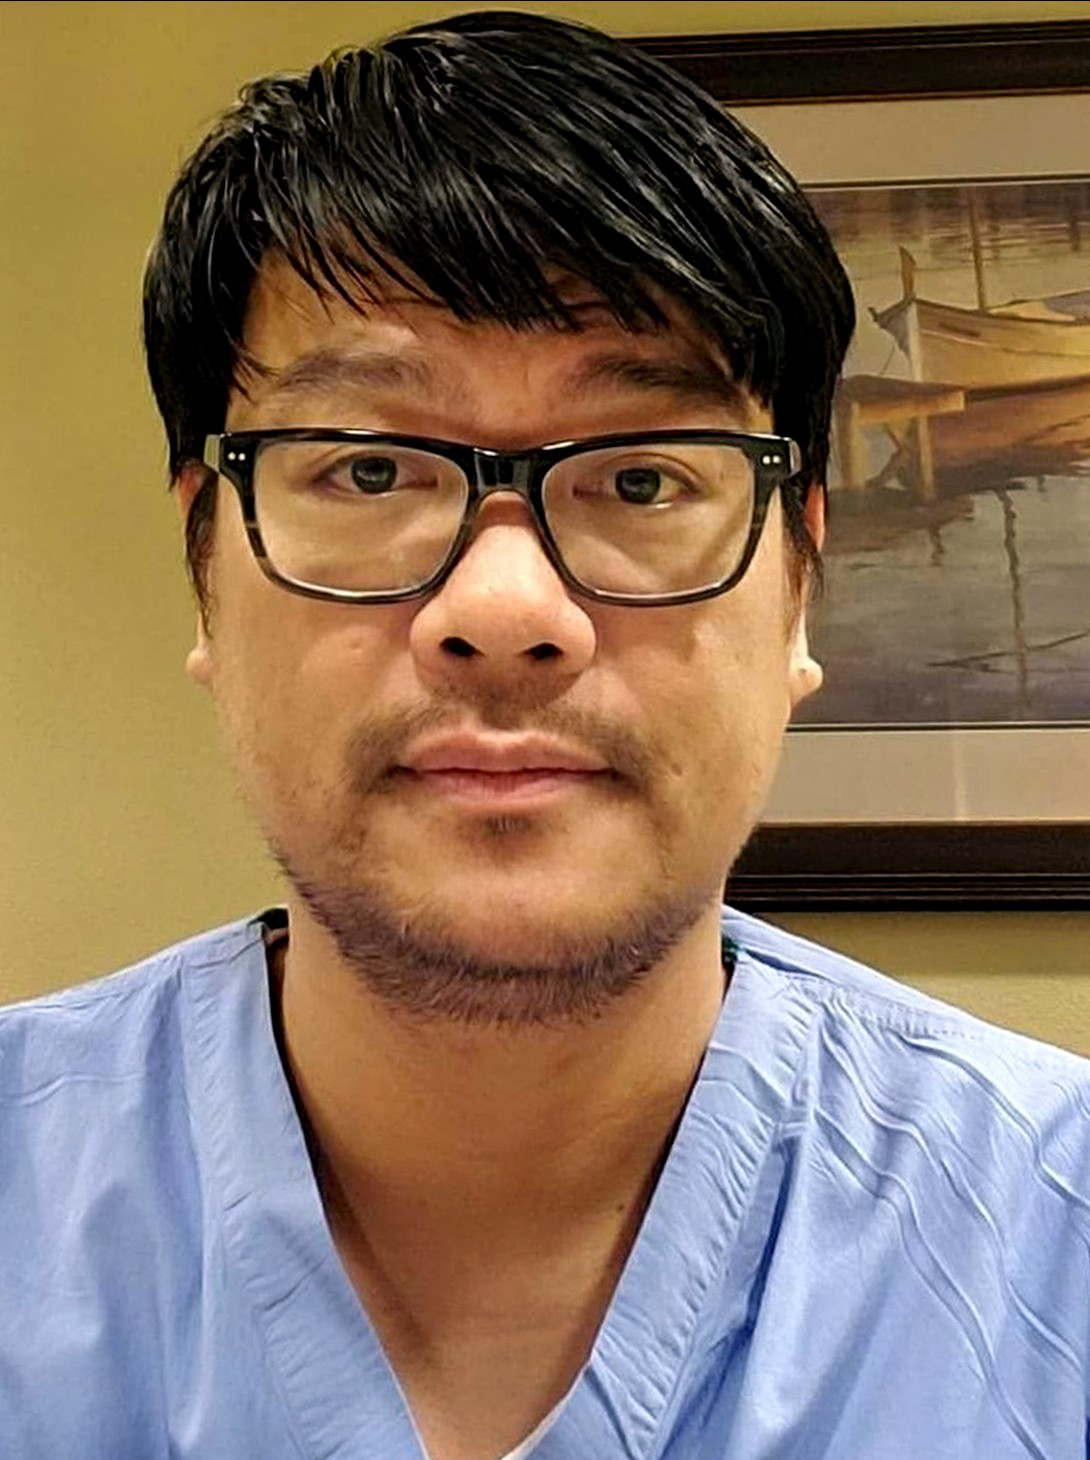 Asian male with black hair wearing glasses and blue scrubs